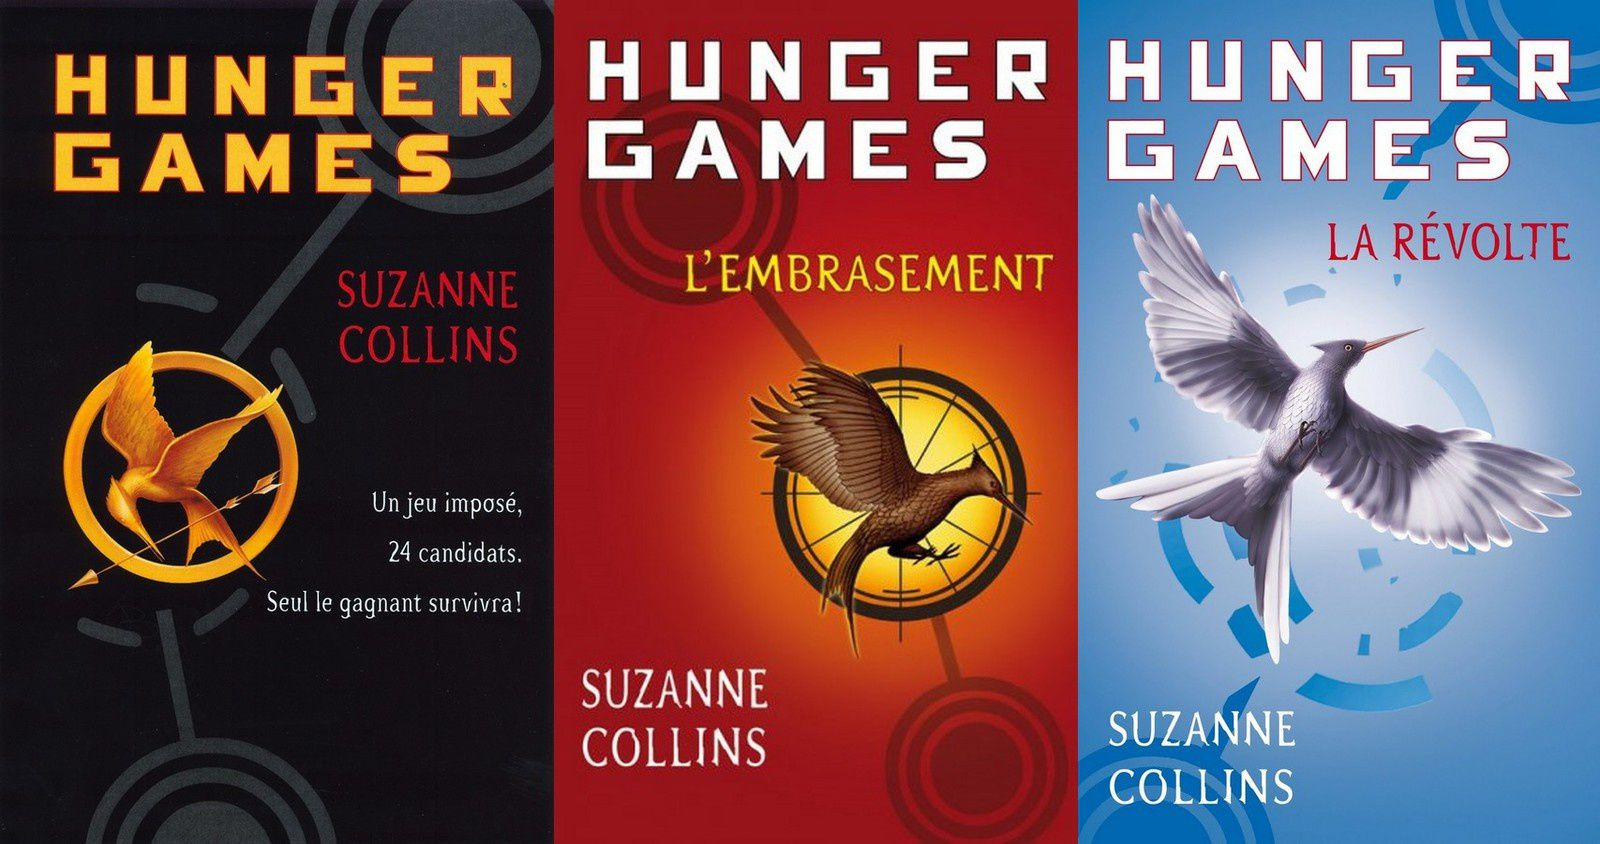 Hunger Games - Trilogie - Suzanne Collins